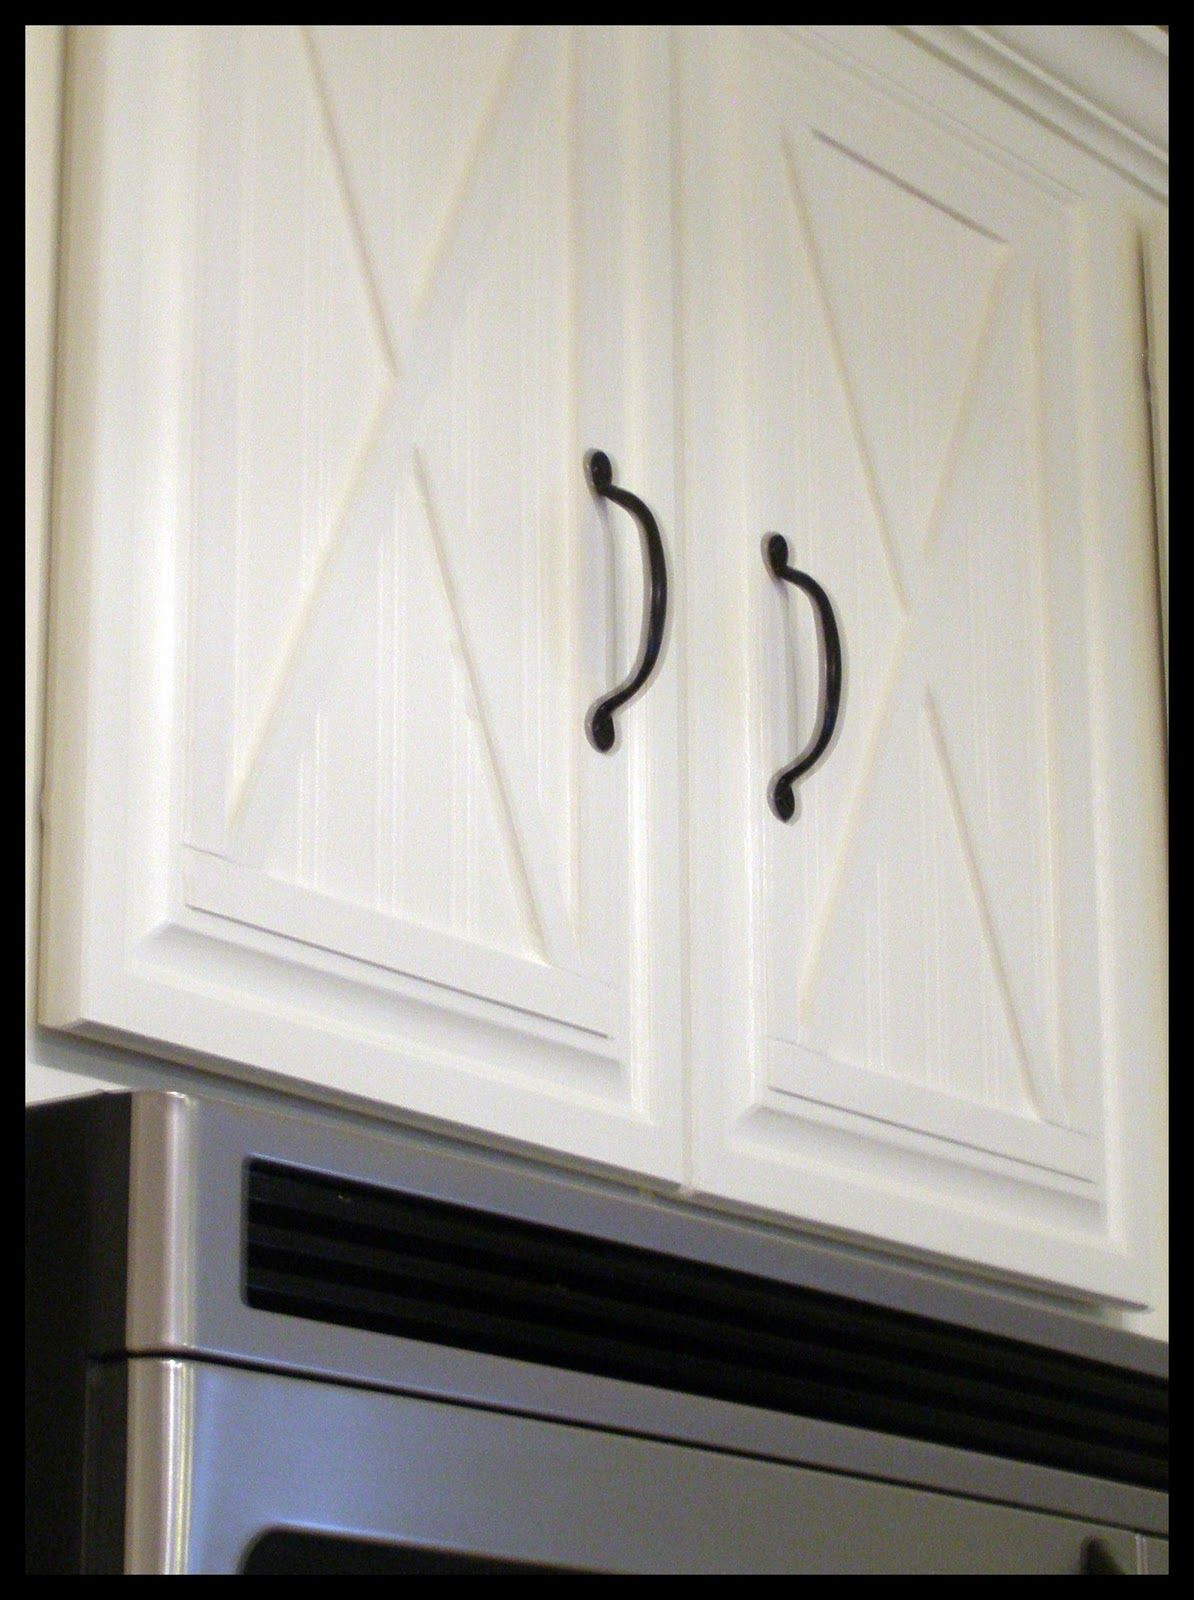 make plain cabinet doors into awesome barndoor styled doors   by adding beadboard wallpaper wood pieces to form x cross and rustic hardware   great for     a vintage vine  a kitchen project   plus a little tour      rh   pinterest com